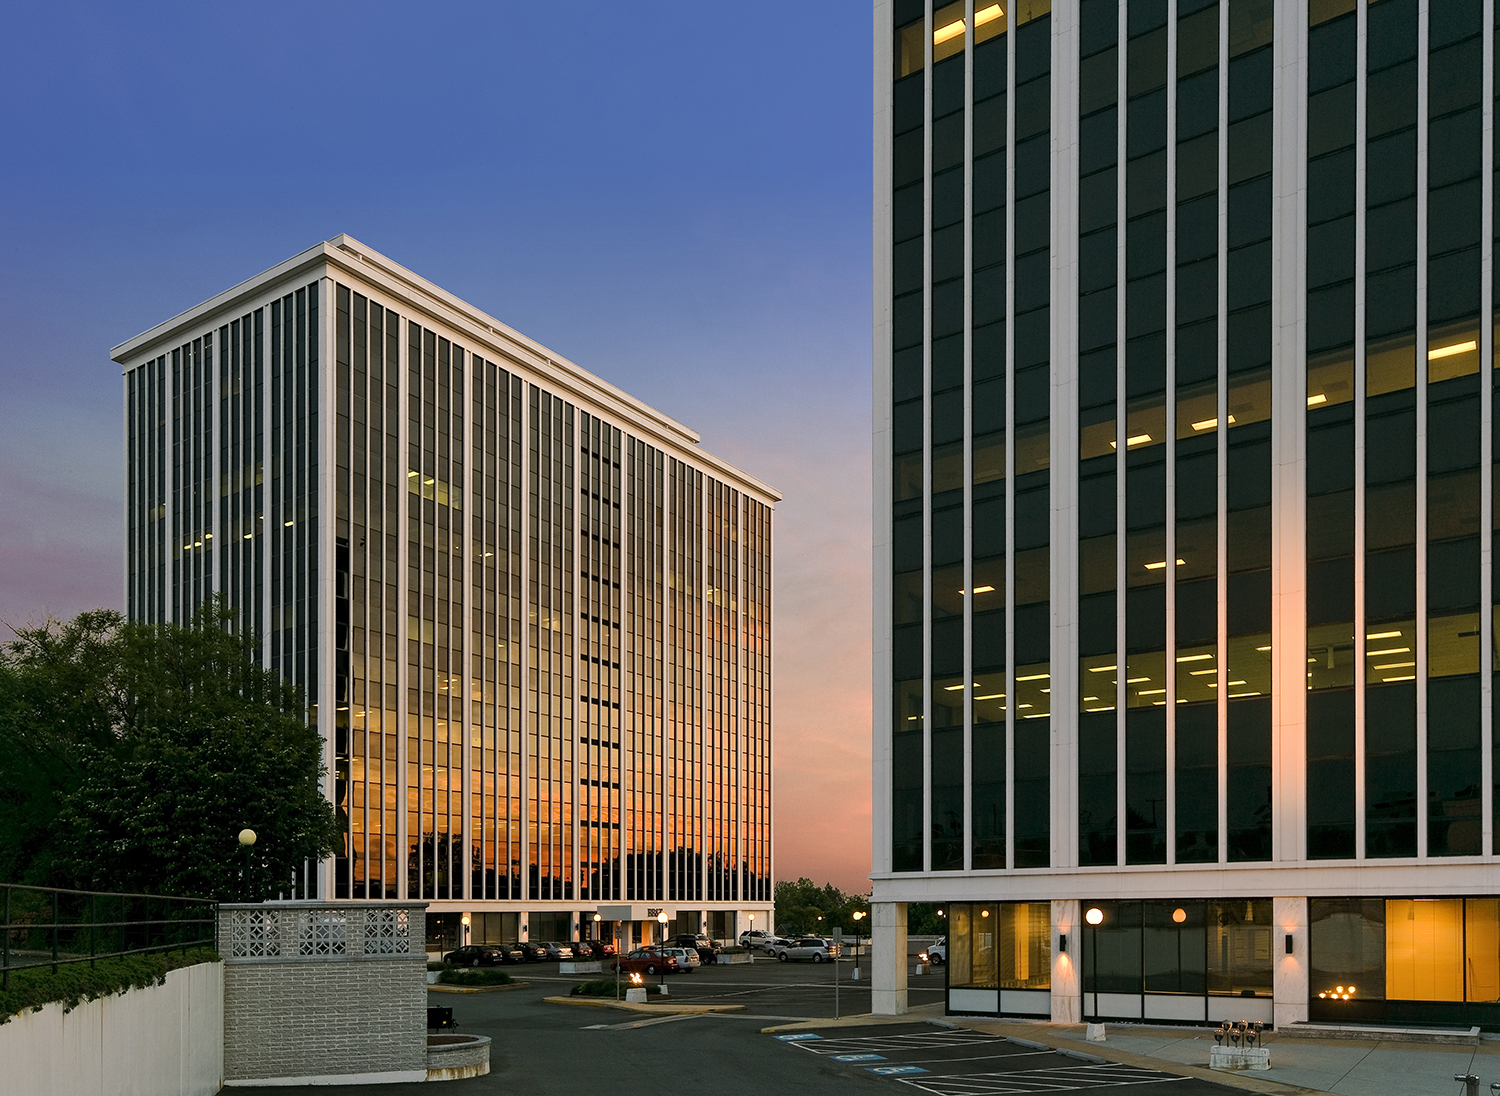 FALLS CHURCH CORPORATE CENTER